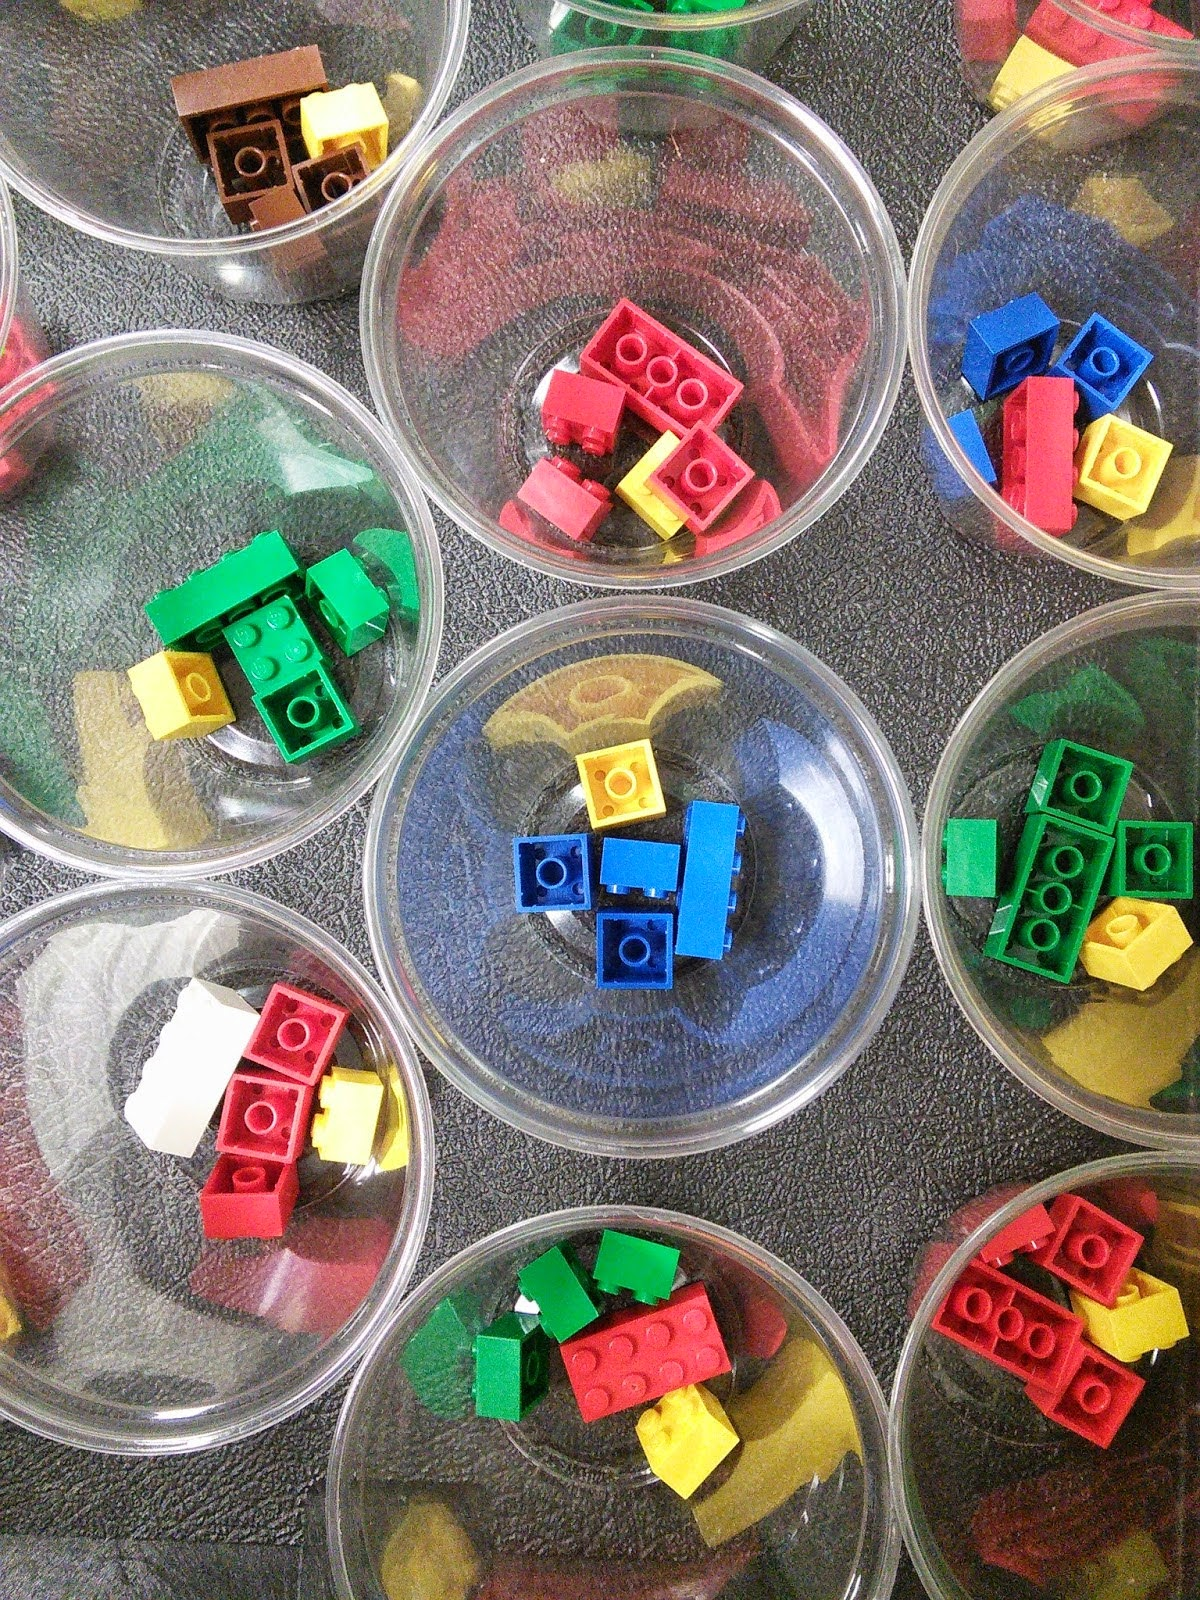 image of Lego pieces in cups